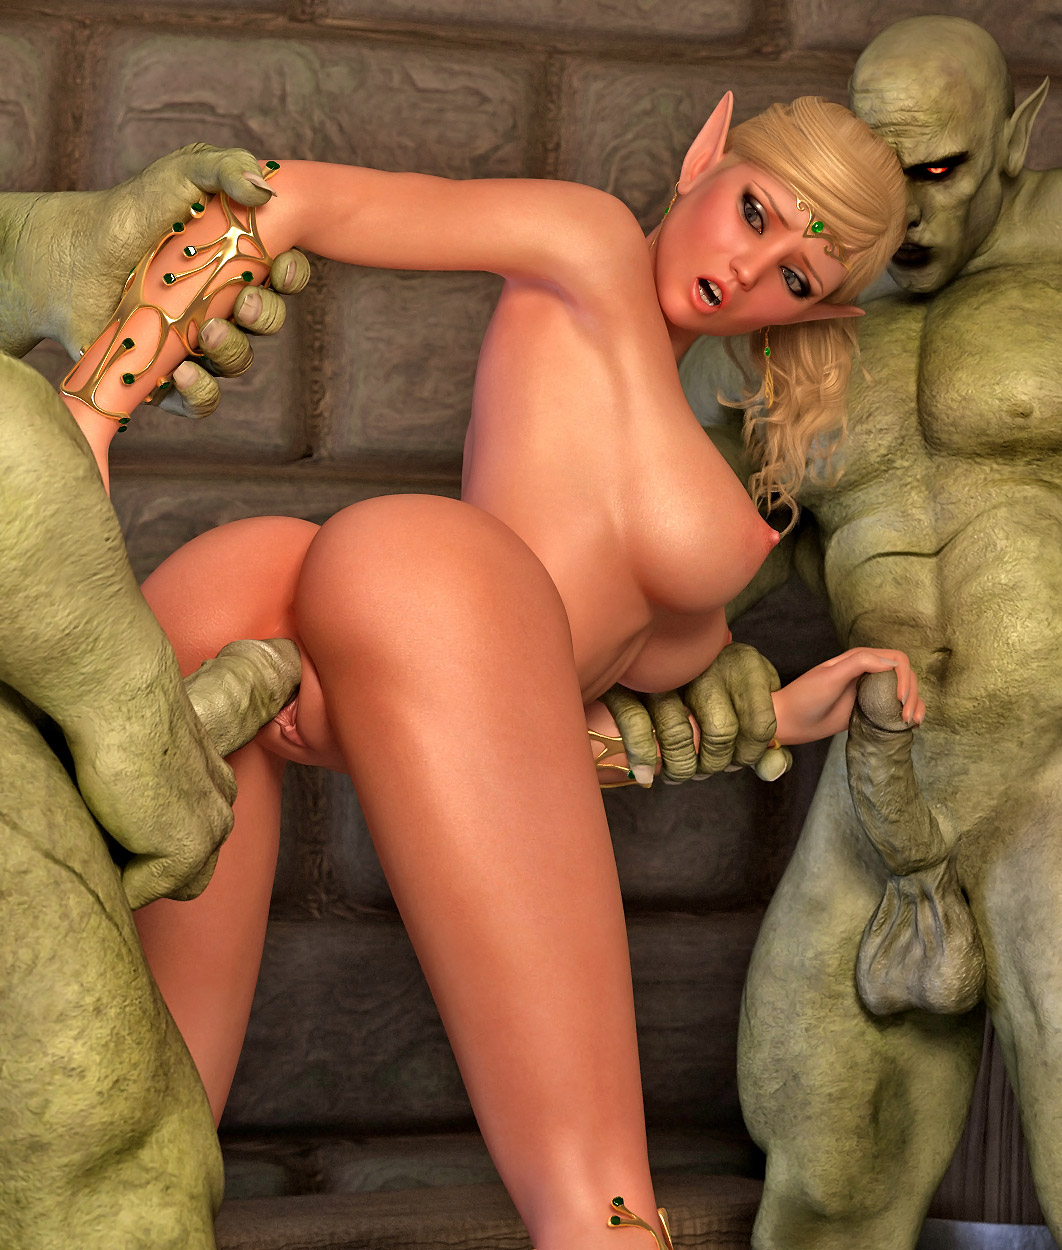 3d princess monster sex 3gp video free  erotic scenes